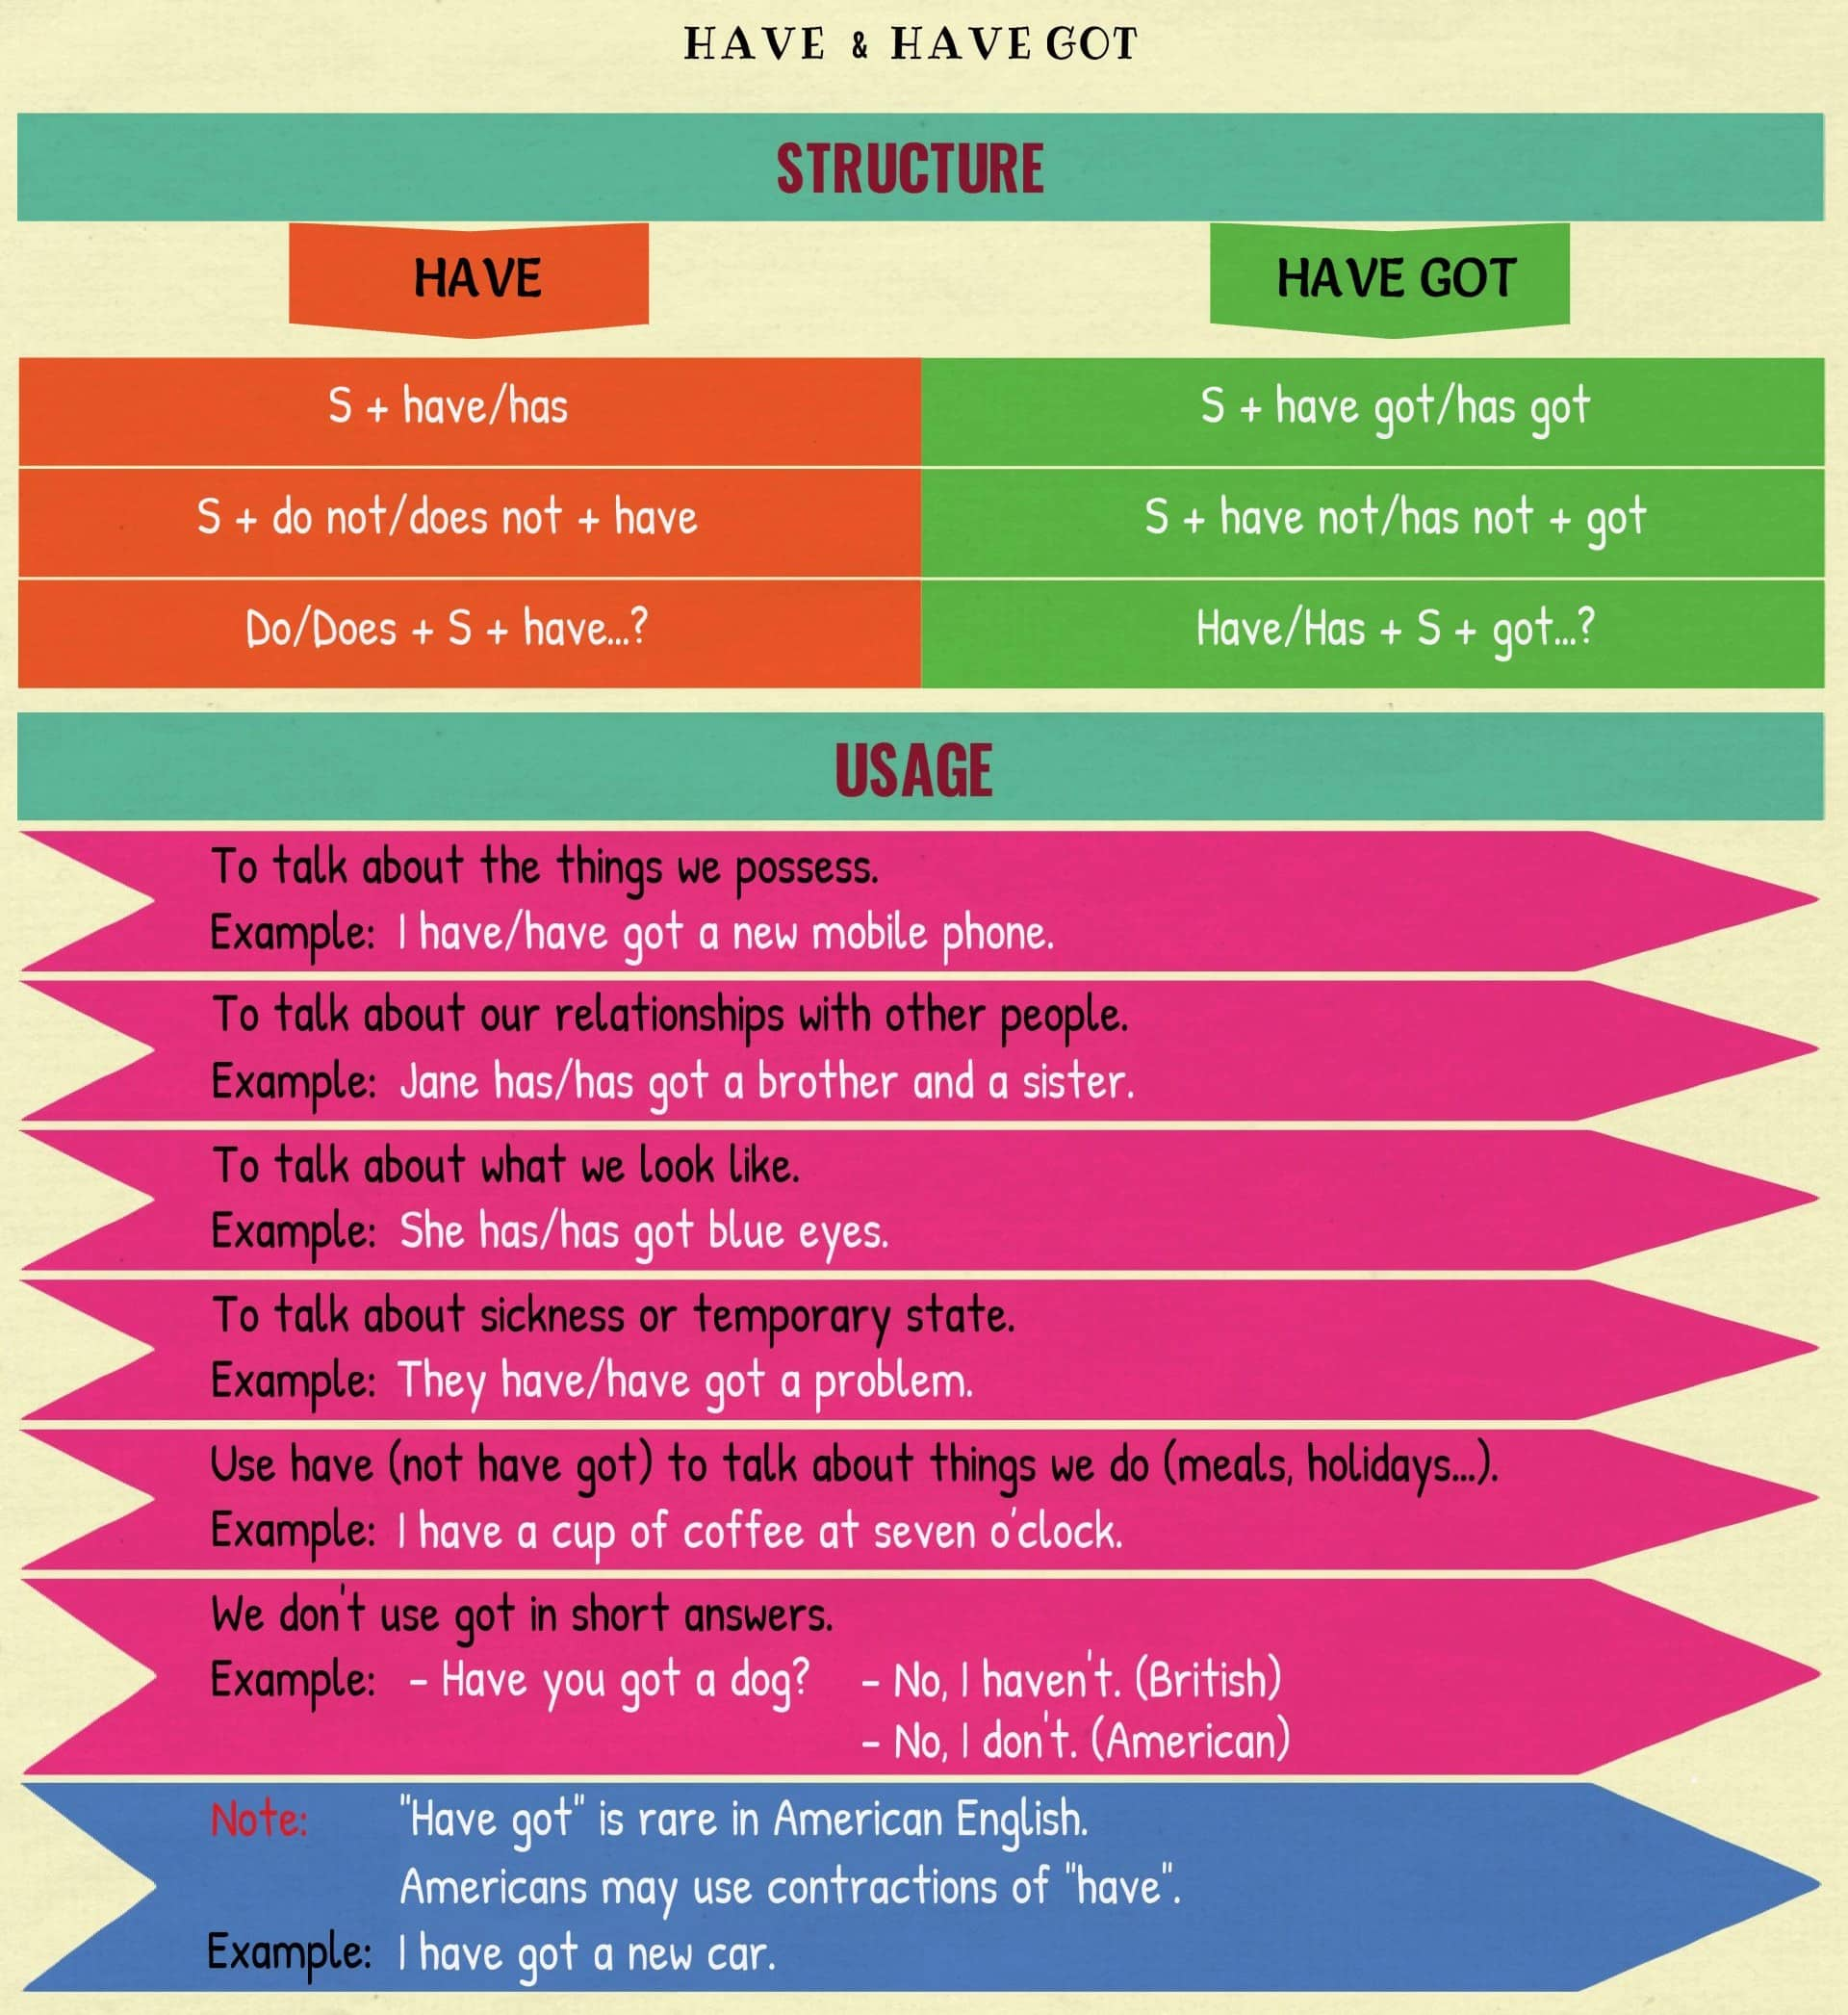 HAVE vs. HAVE GOT | The Difference Between HAVE & HAVE GOT